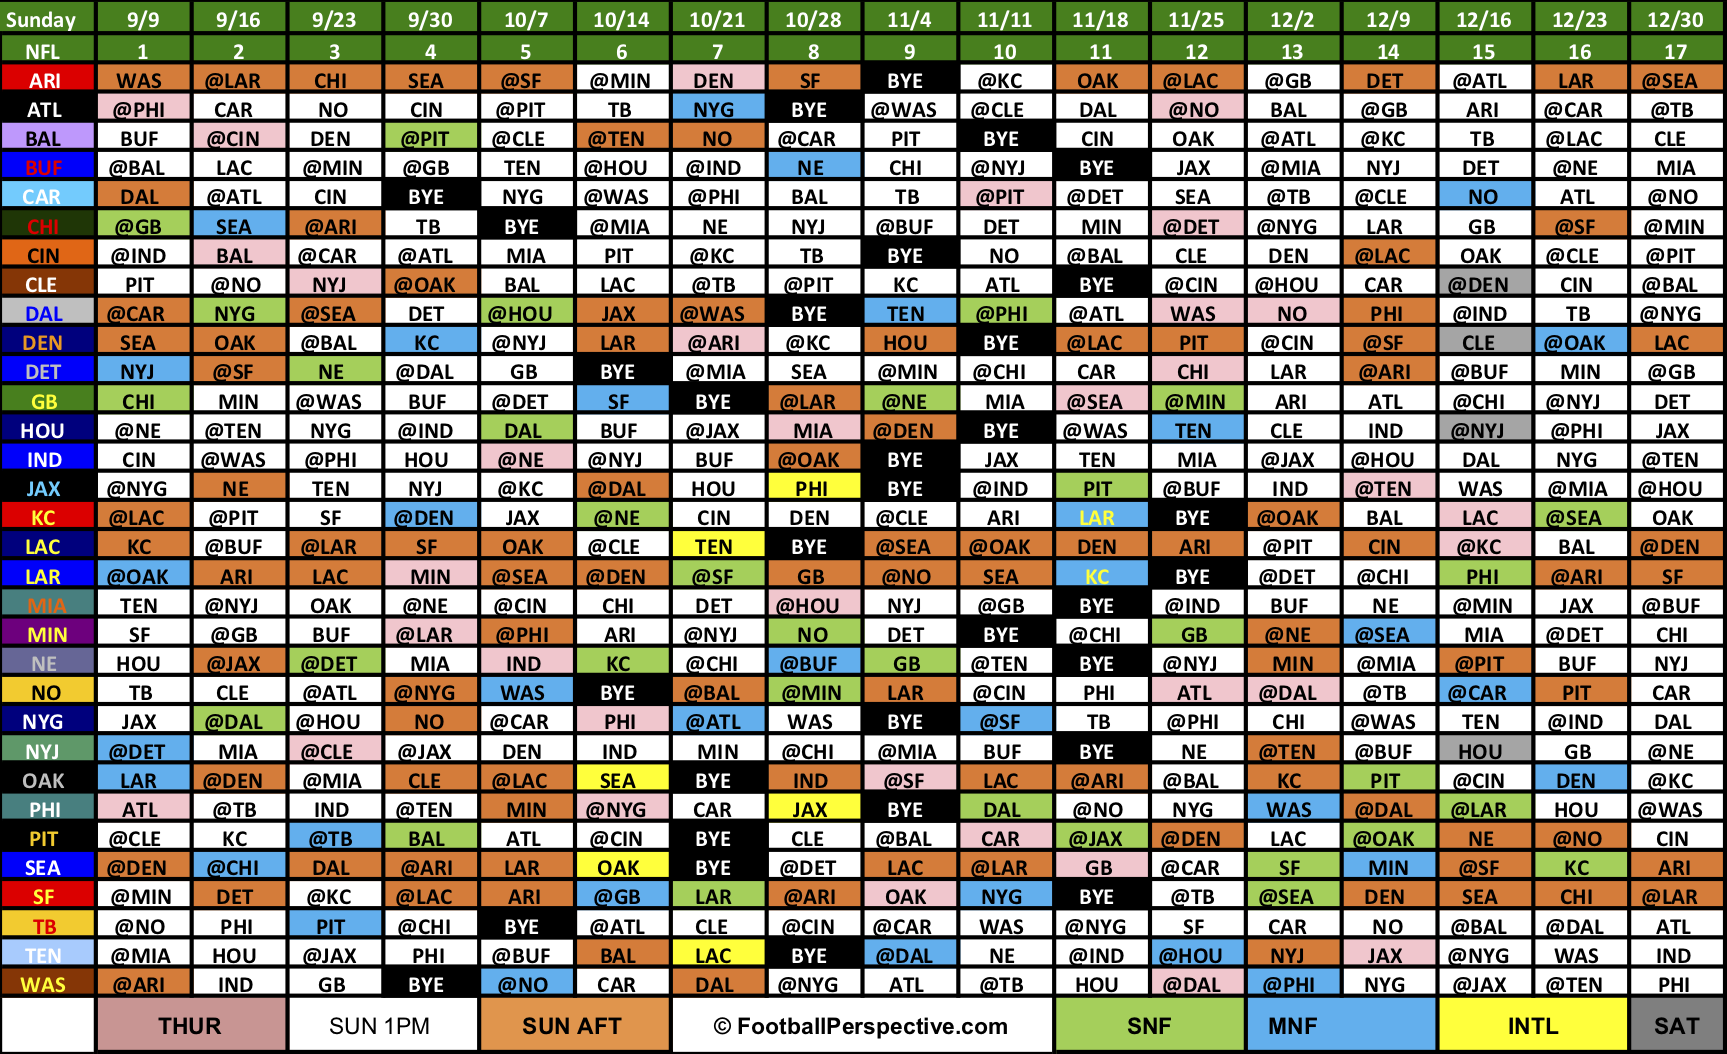 This is an image of Transformative Nfl Schedules 2020 Printable